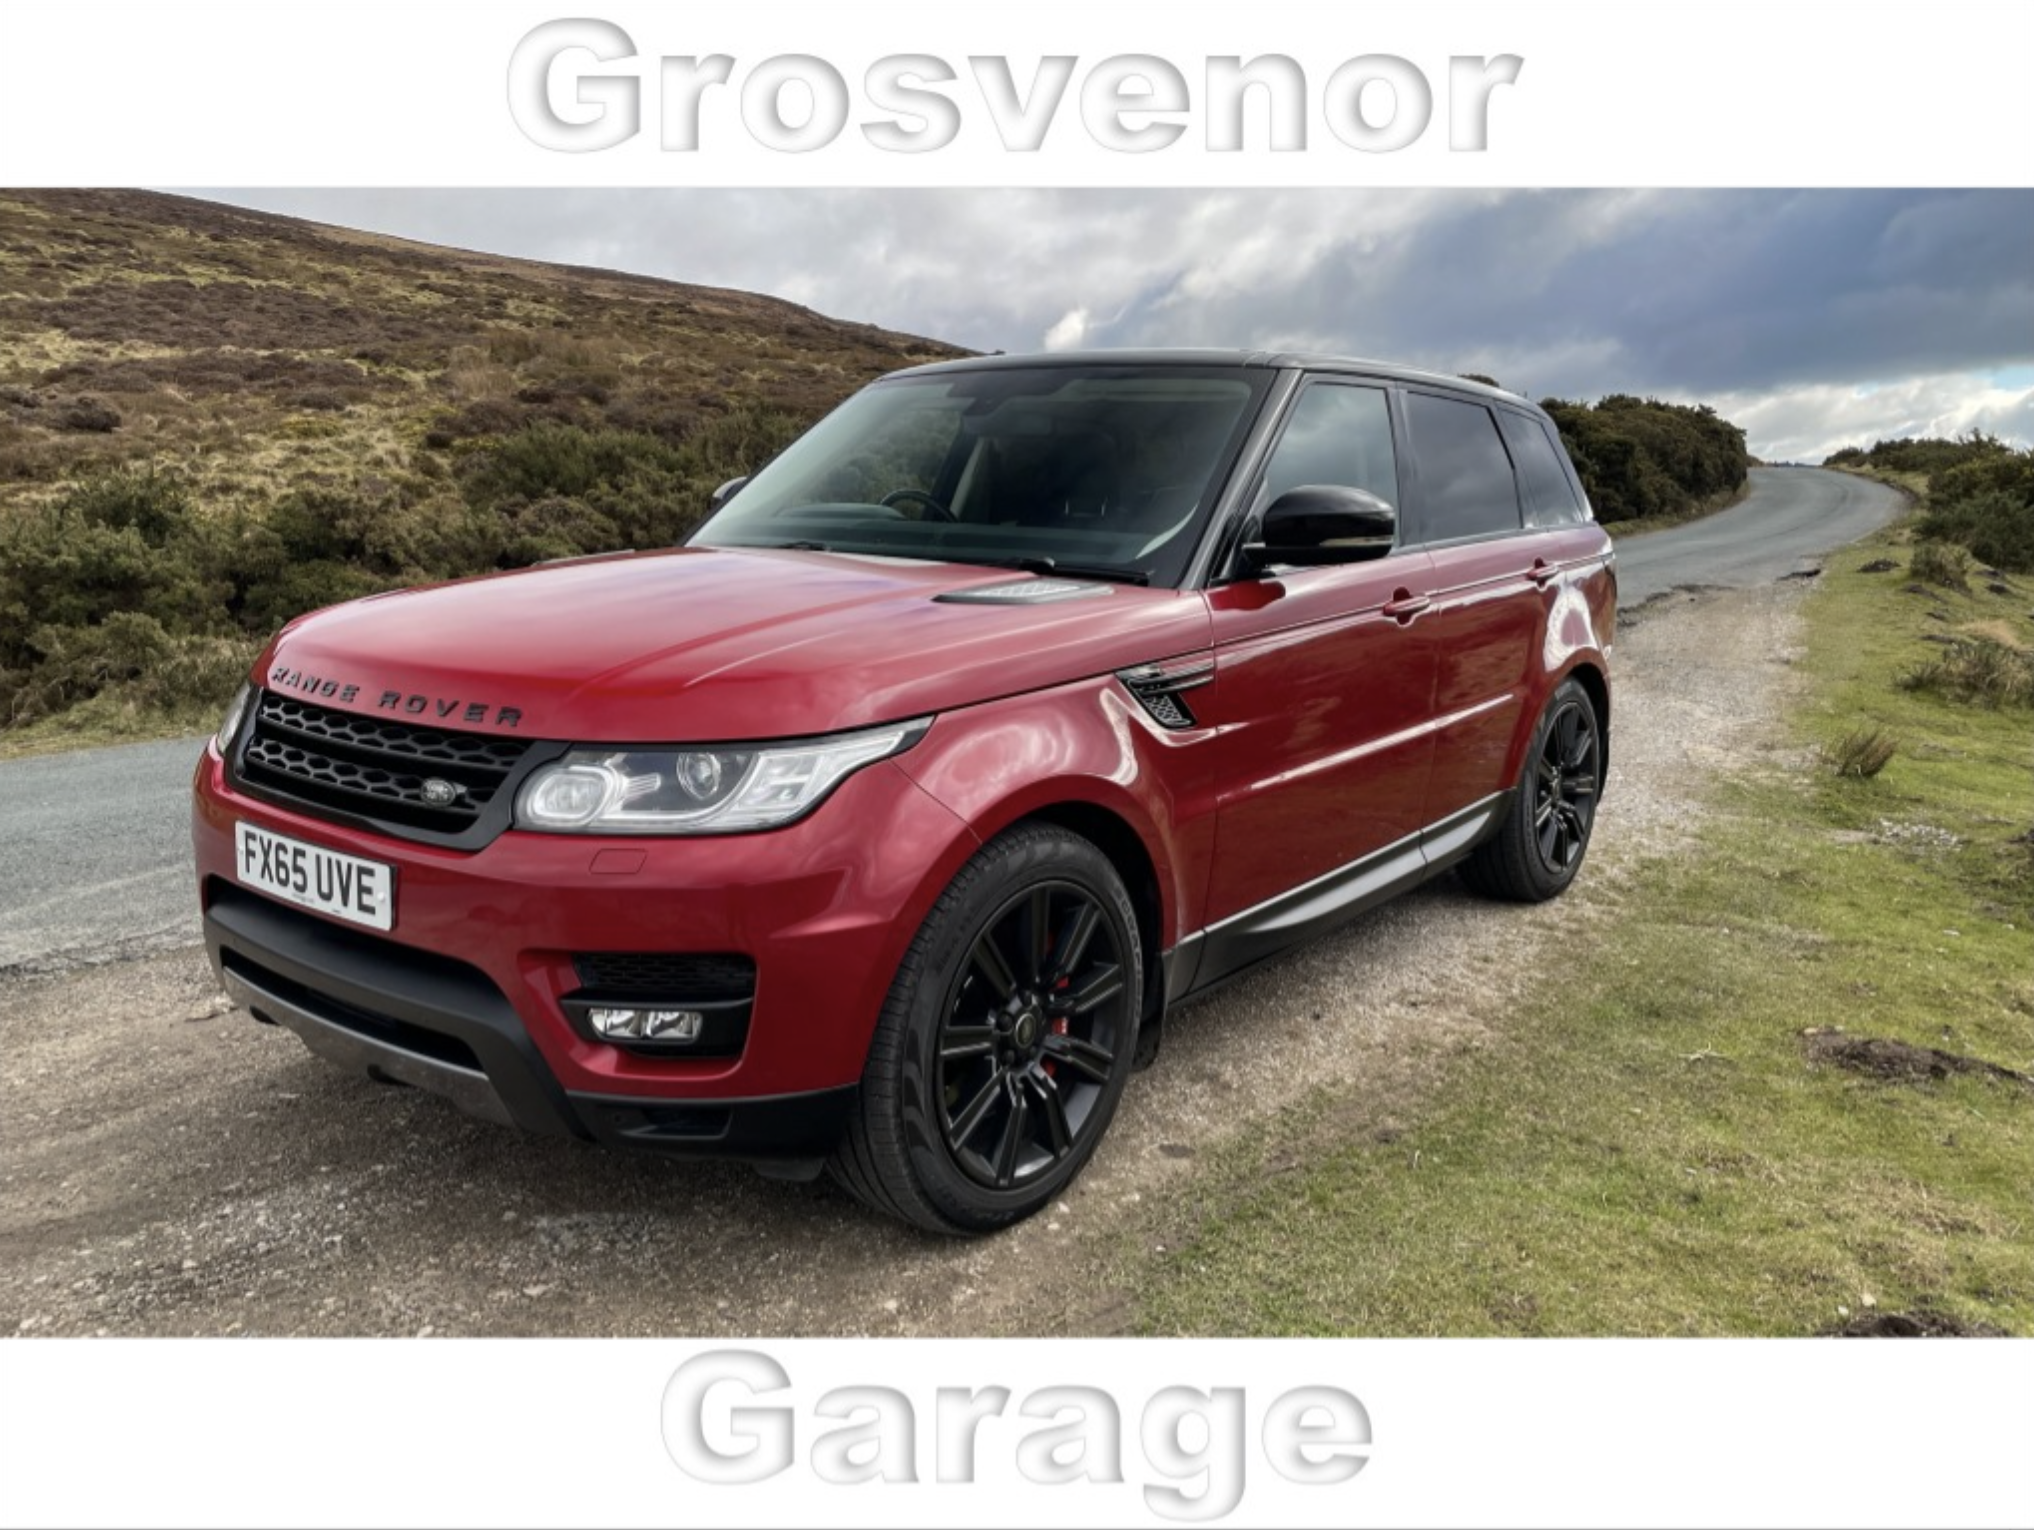 2015 (65) LAND ROVER RANGE ROVER SPORT 3.0 SDV6 HSE DYNAMIC 5DR AUTOMATIC